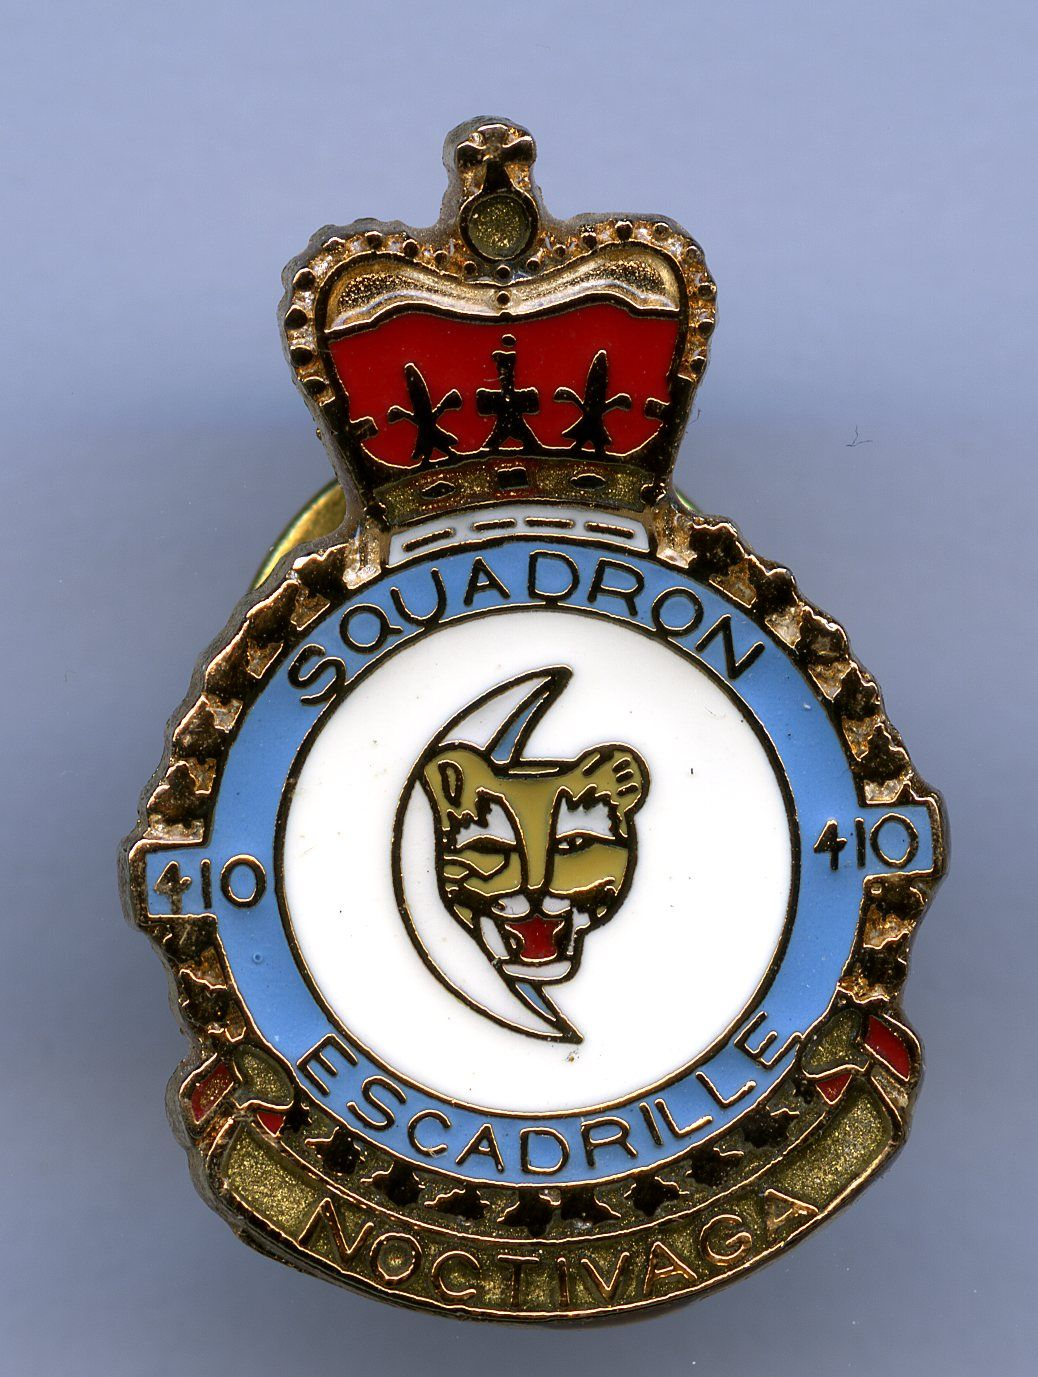 RCAF 410 Squadron Canadian military, Badge